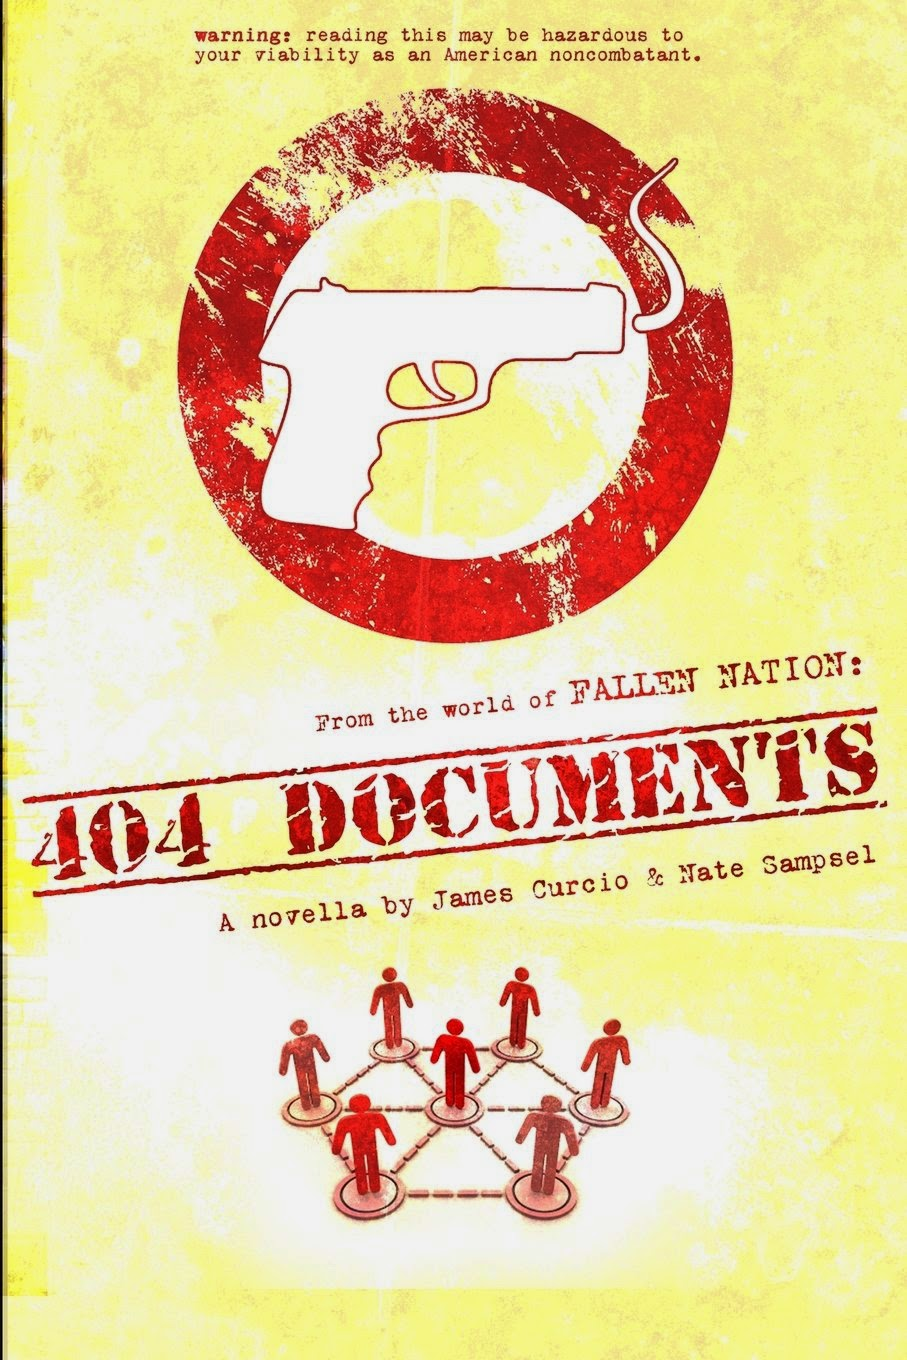 http://www.amazon.com/404-Documents-James-Curcio/dp/0615592058/